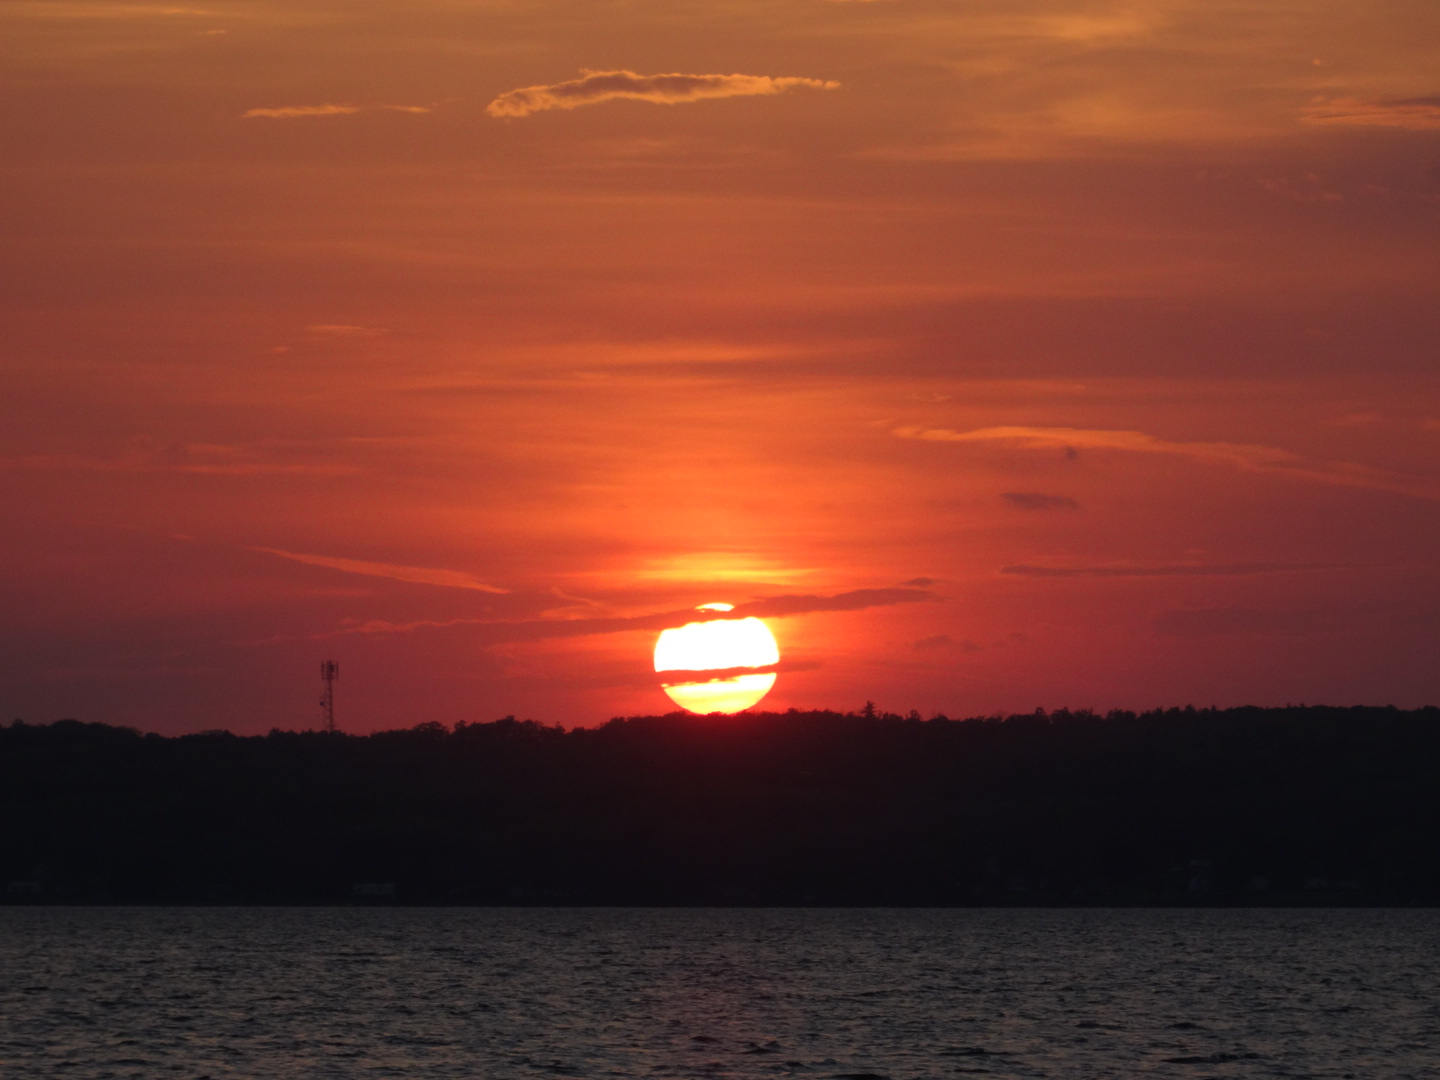 A photo of a beautiful red sunset over Rice lake at Golden Beach resort